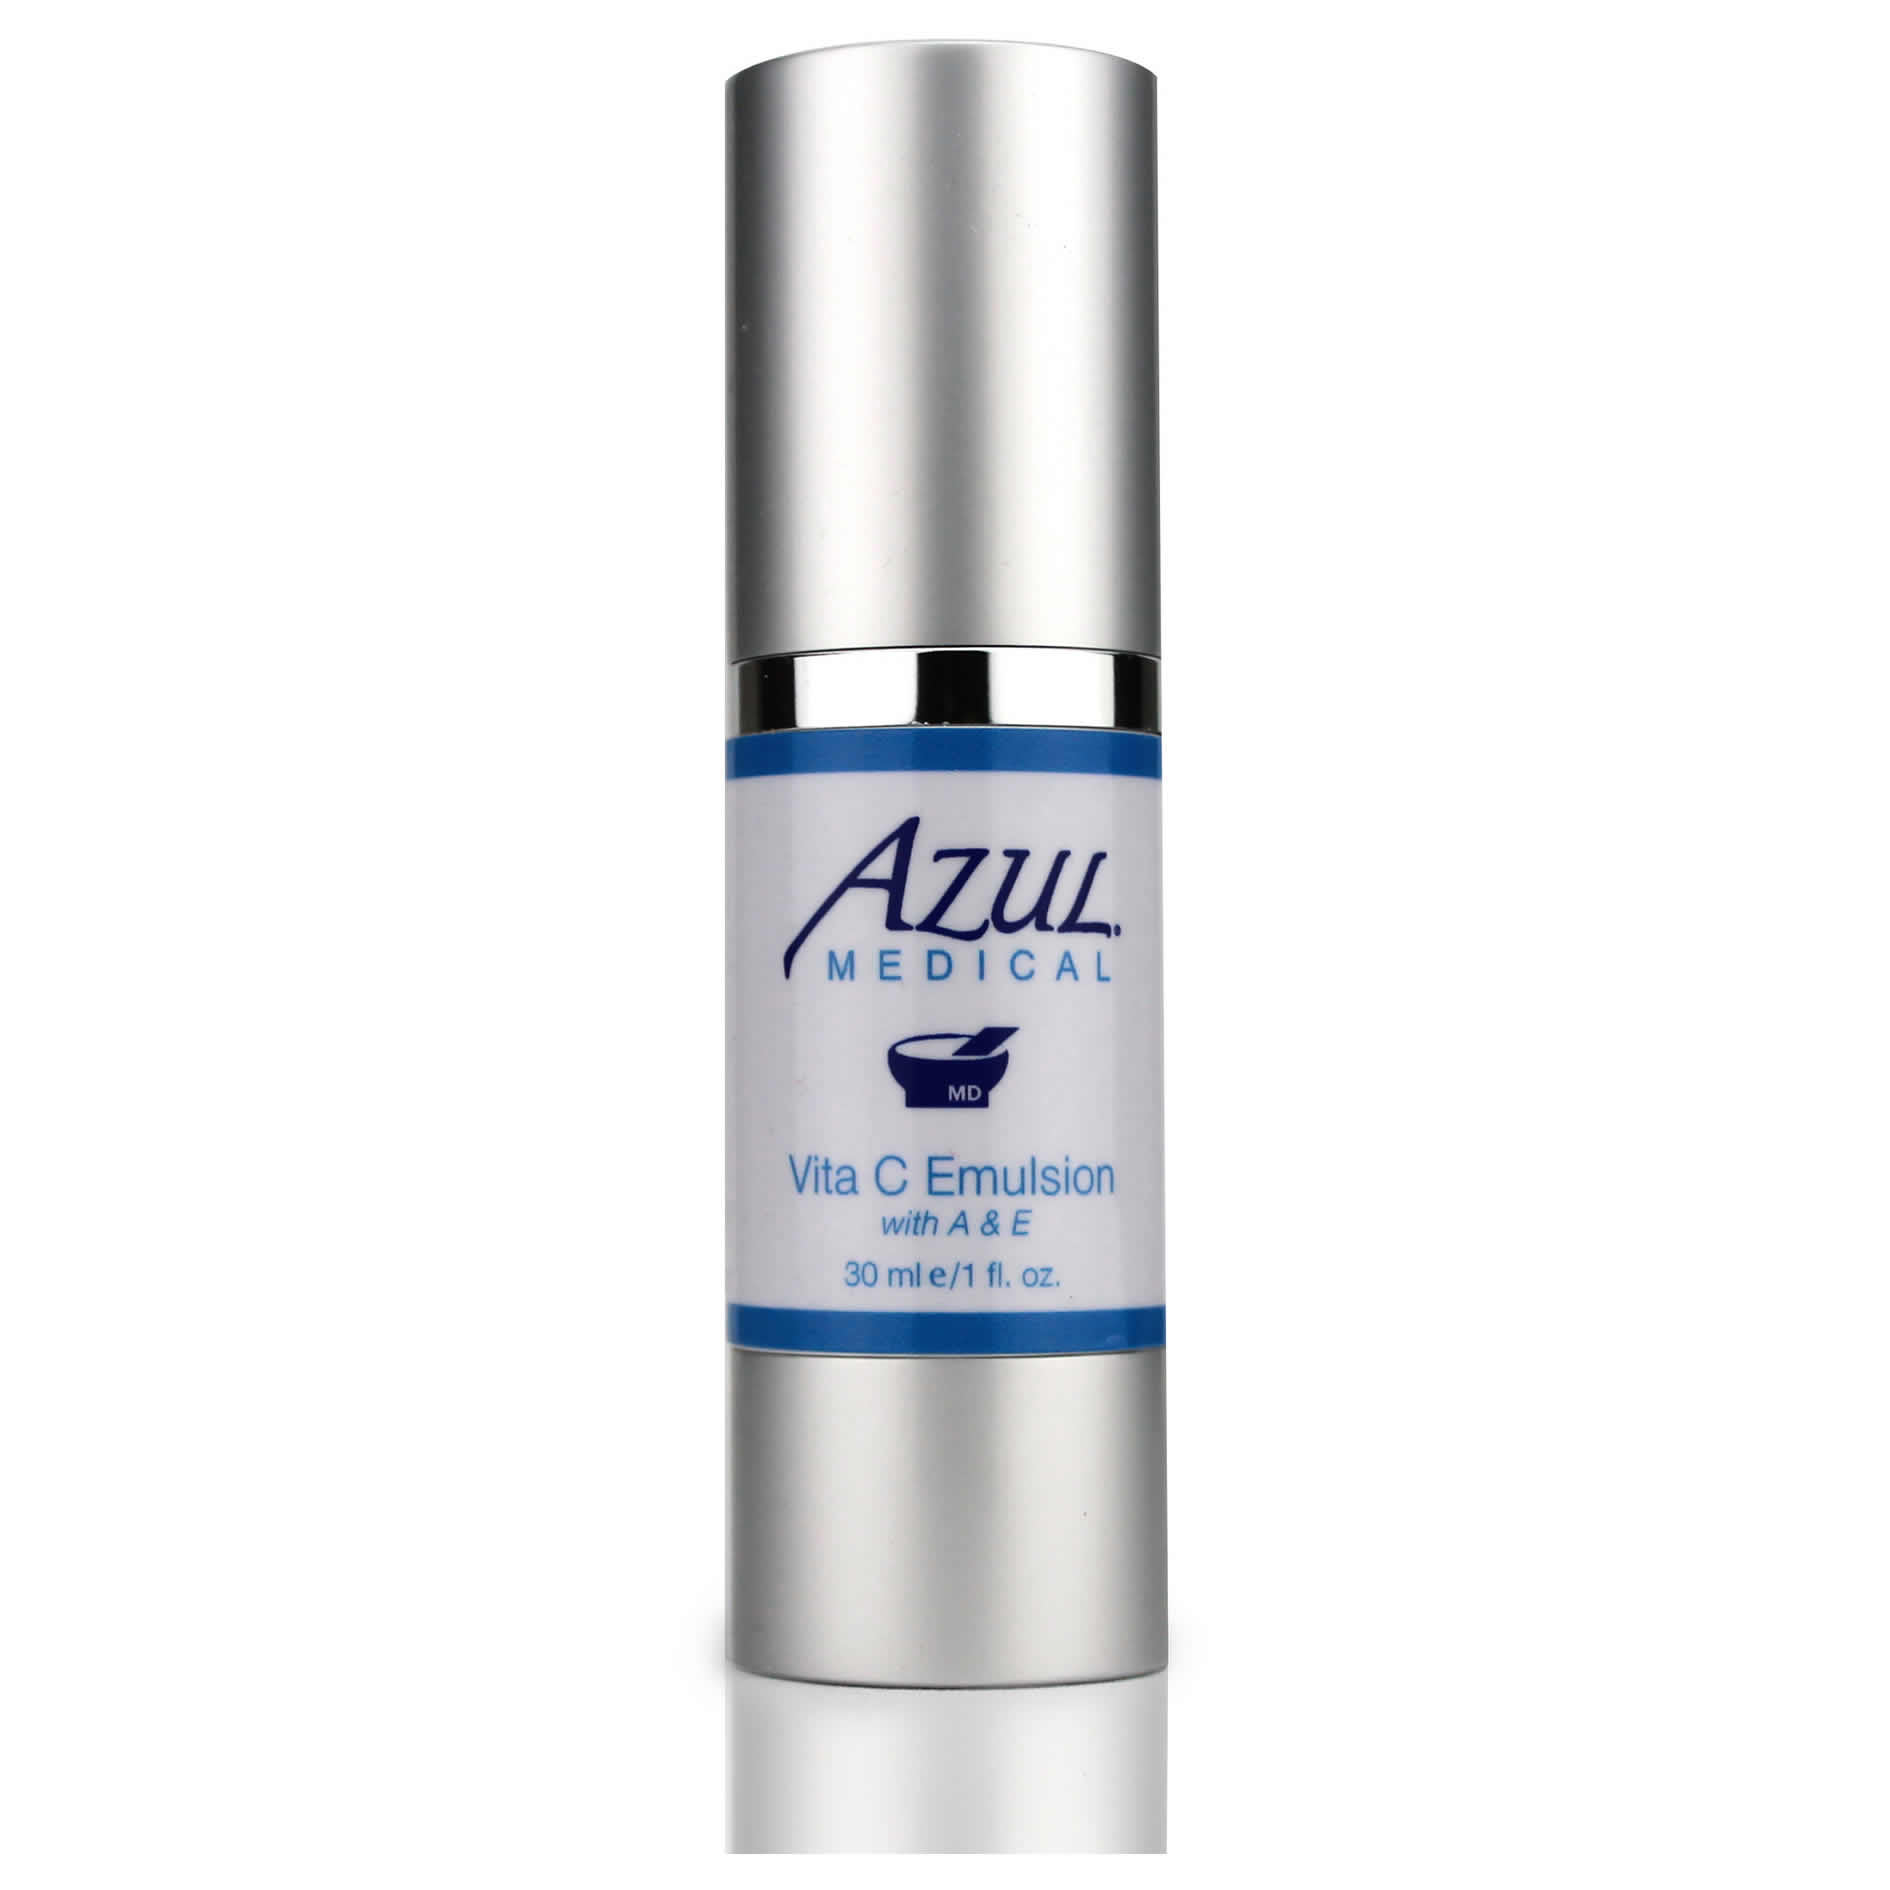 Azul Medical - Vita C Emulsion with A & E